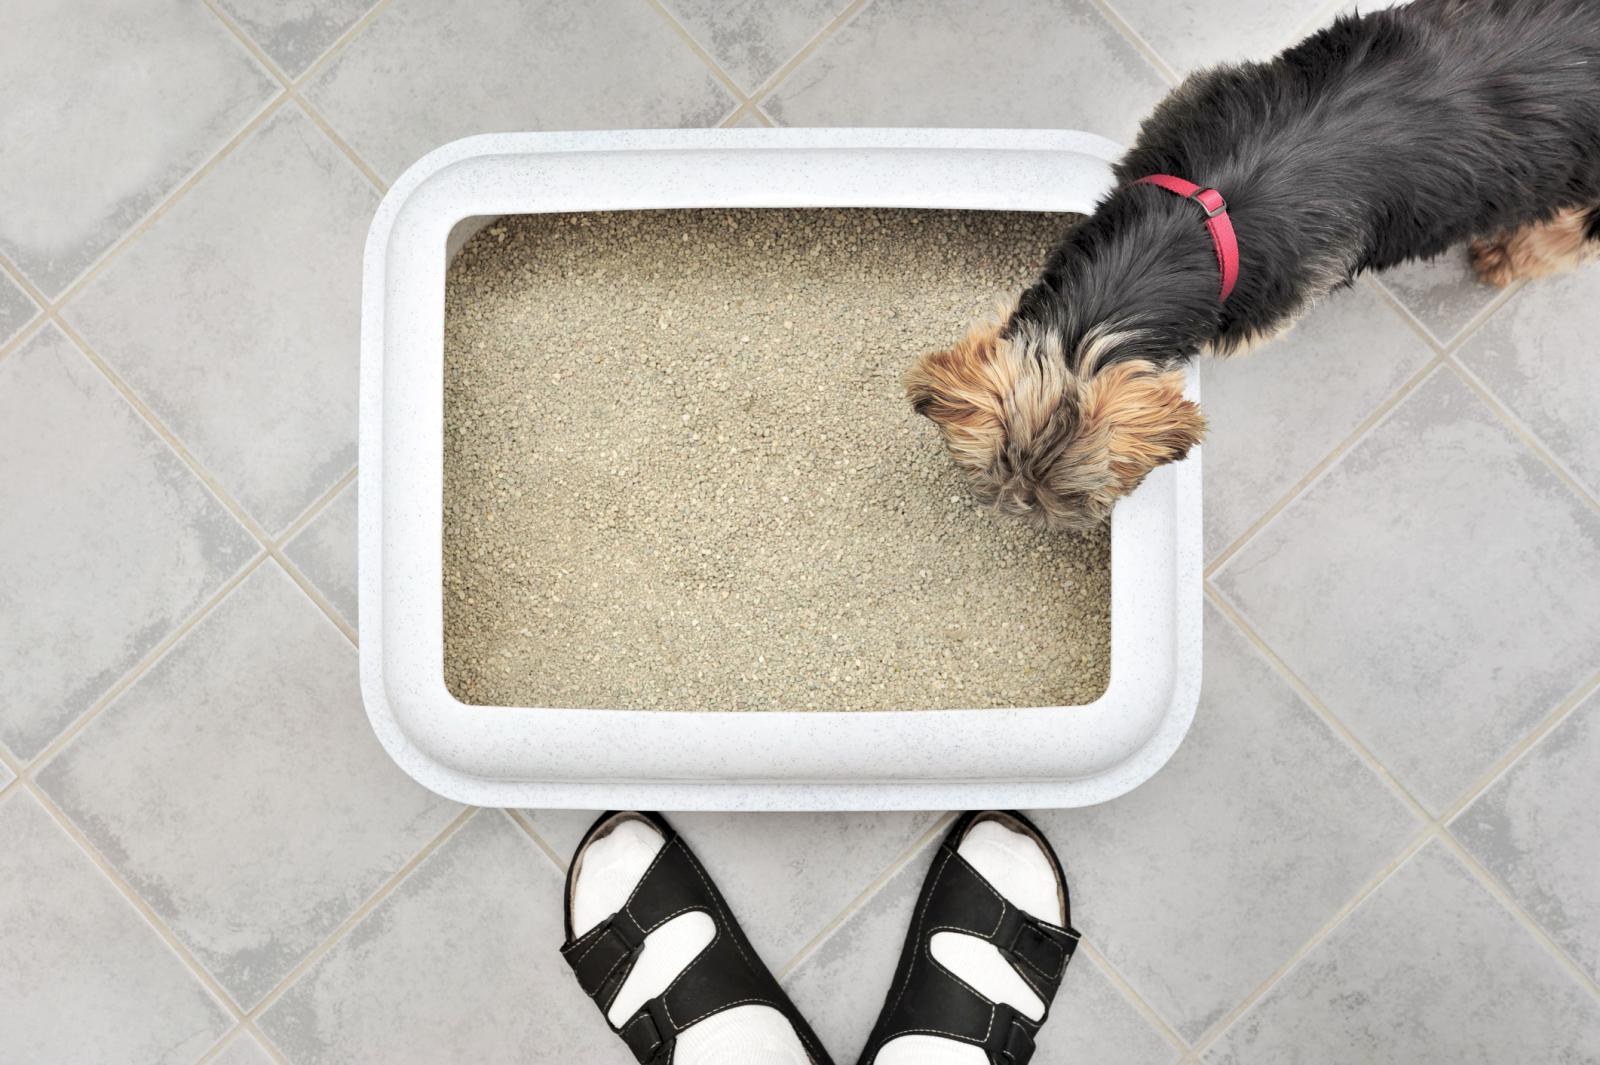 Dog Litter Box and a York prey terrier